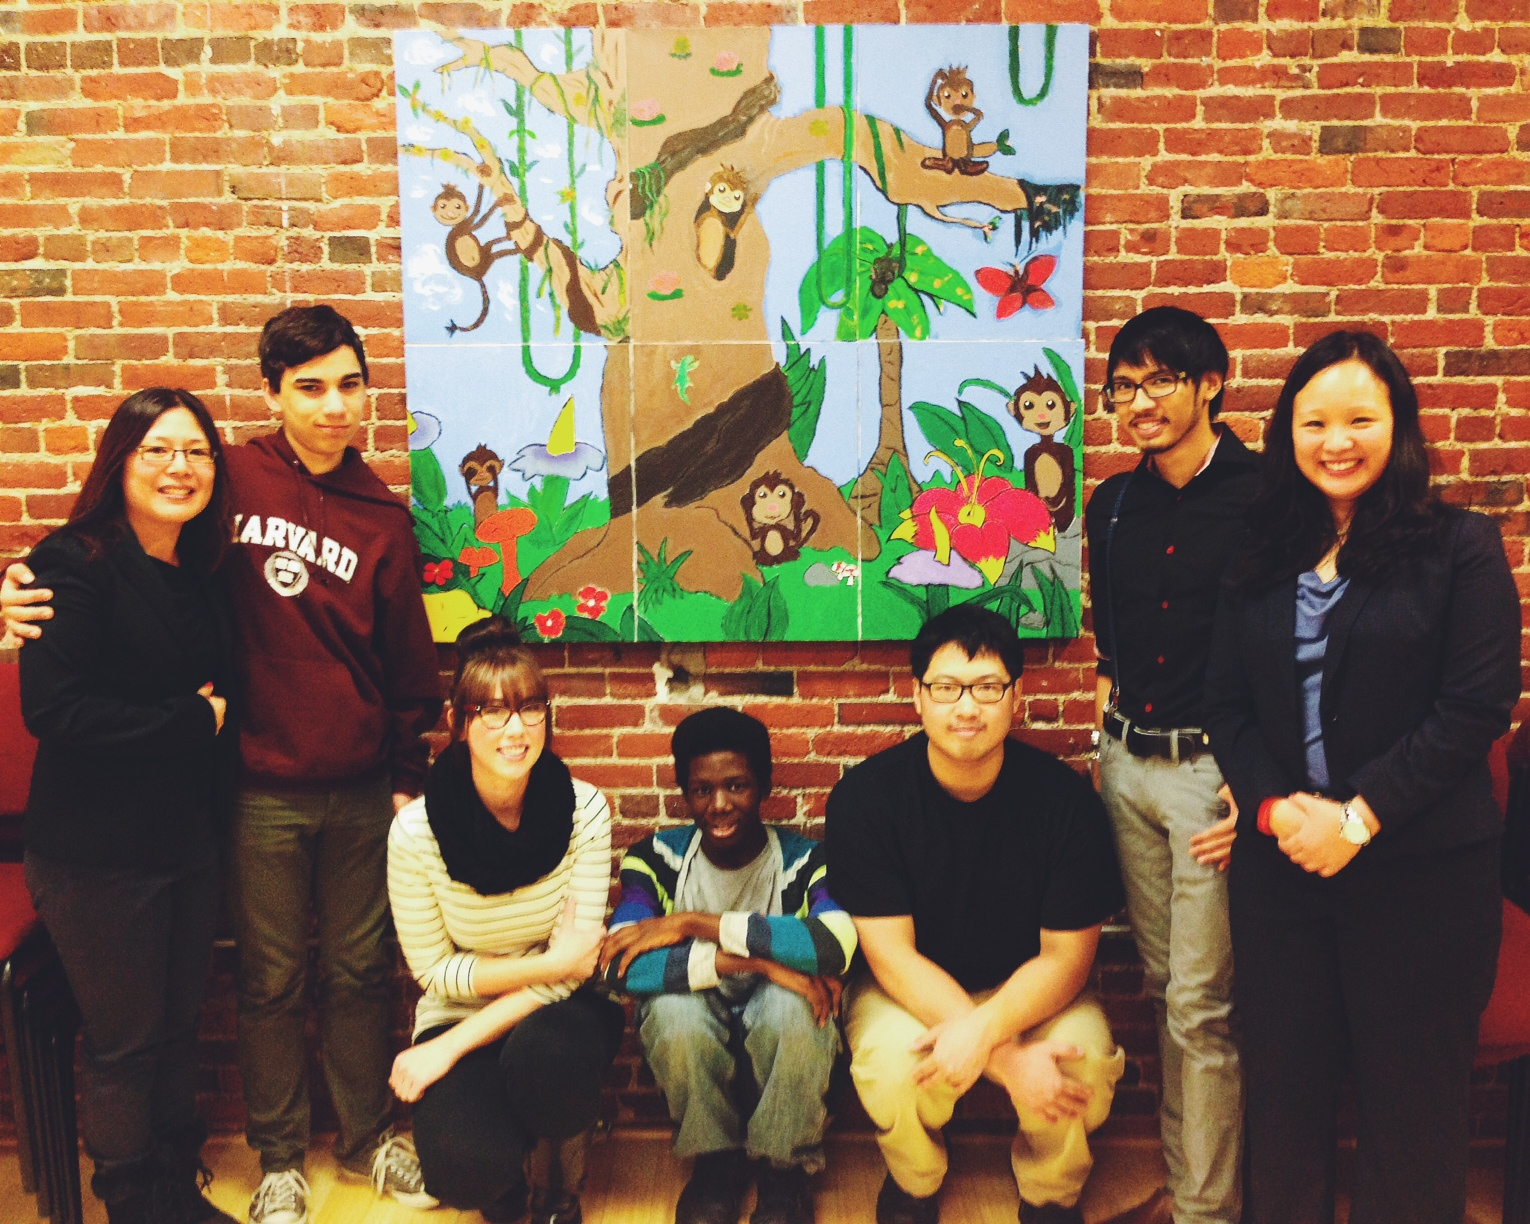 MAP Staff & Peer Leaders at the Mural Unveiling for South Cove Community Health Center